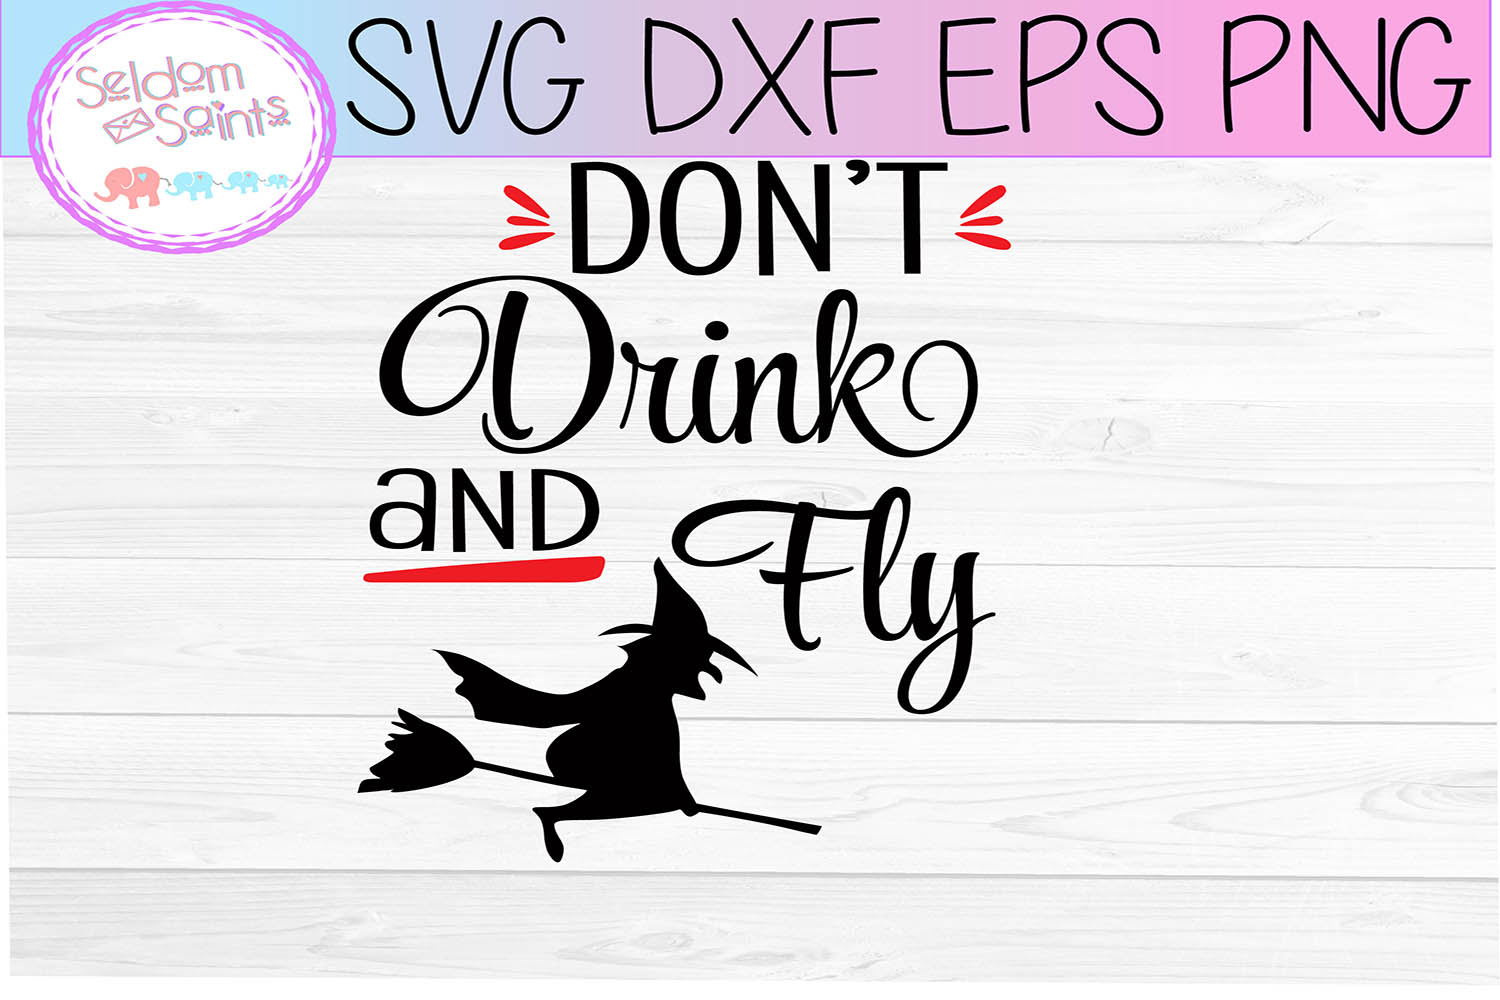 Don't Drink and Fly SVG PNG DXF EPS Cricut Cut File example image 2